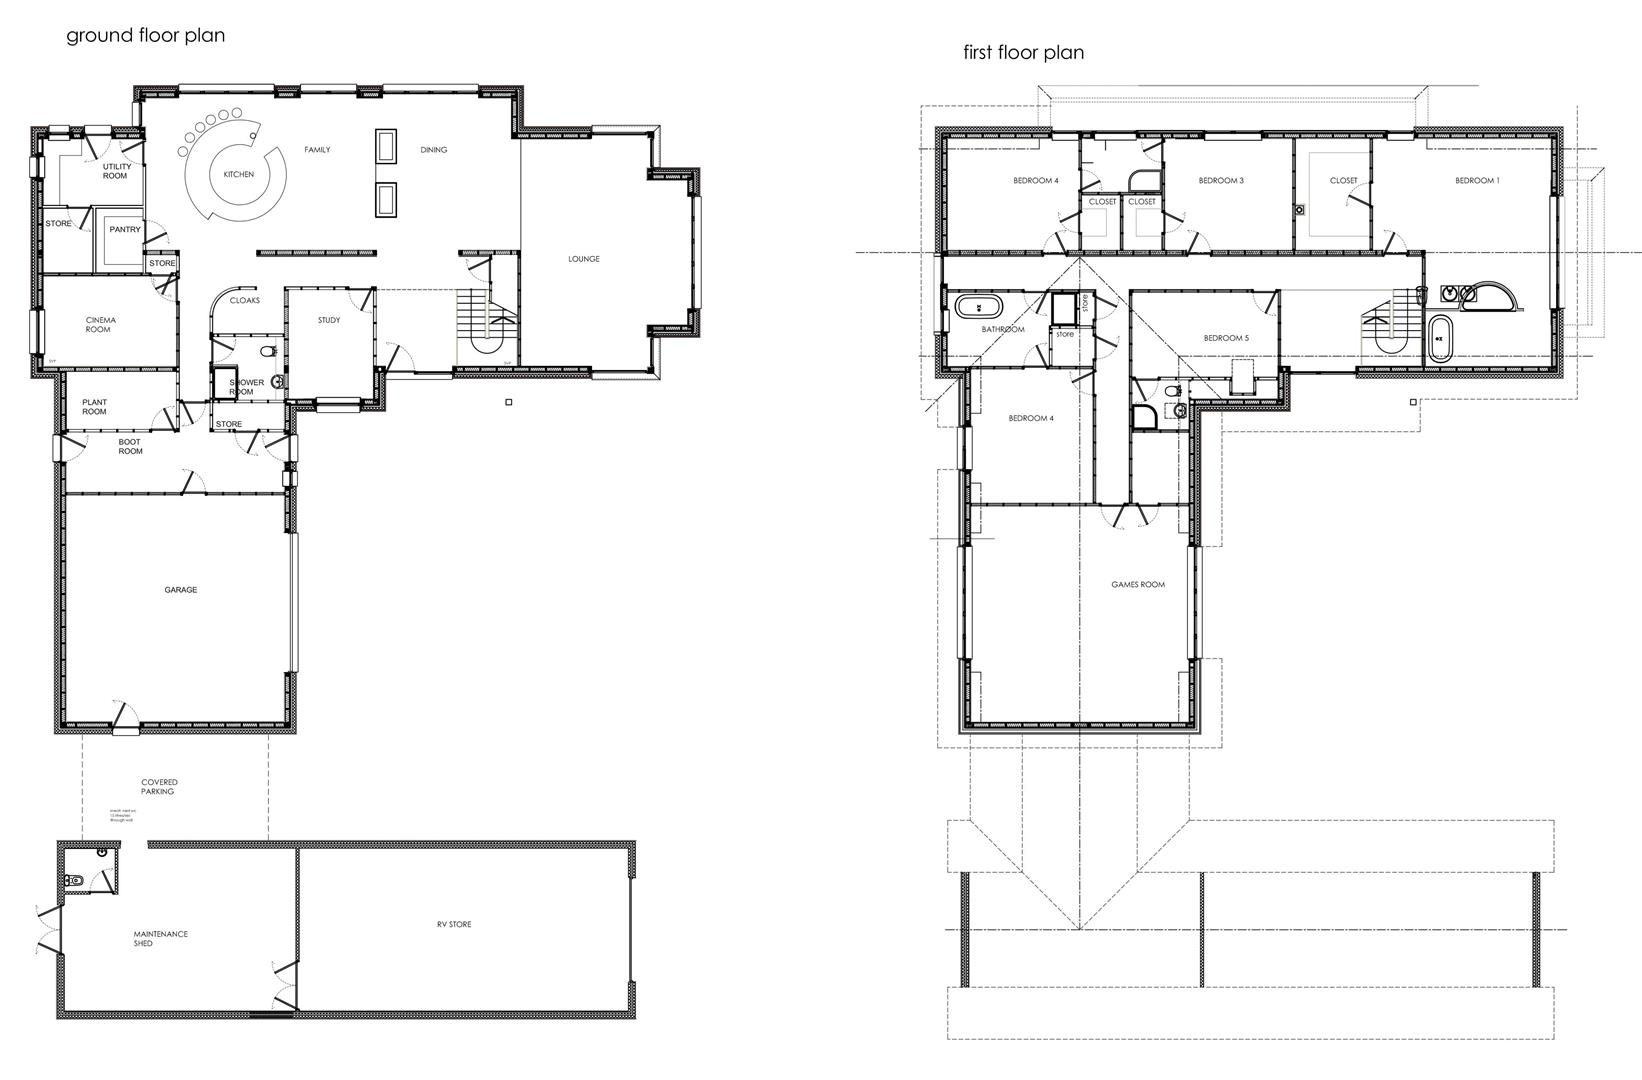 CL_10_0494-Floor_Plans_-_Proposed_-_approved-32497